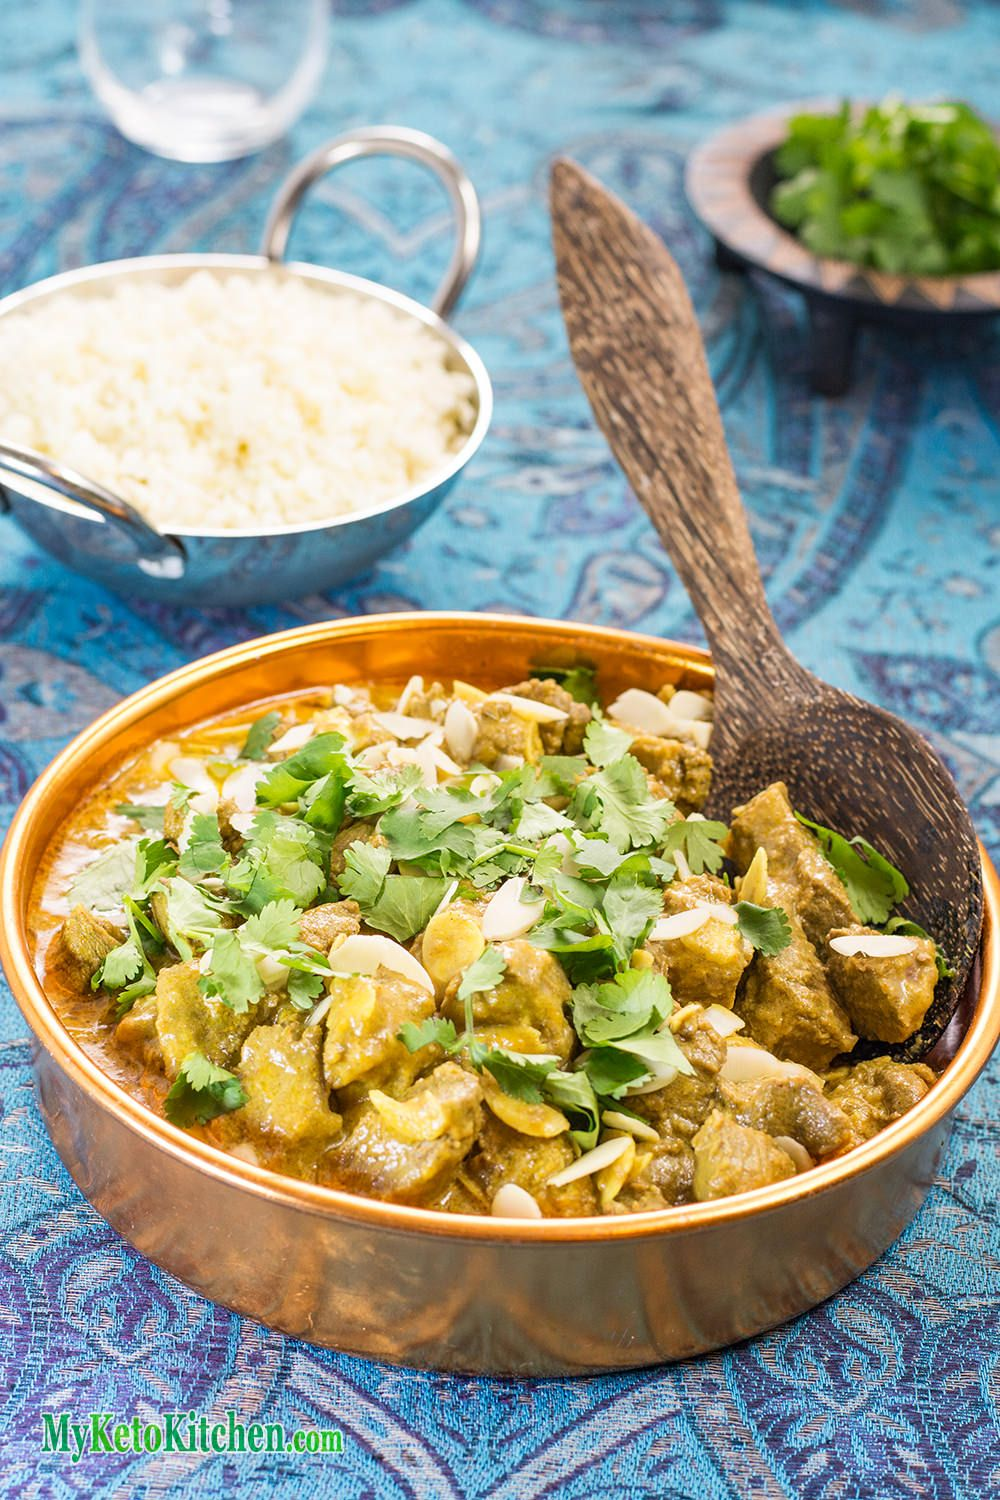 """Low Carb """"Spicy & Aromatic"""" Indian Madras Recipe Curry"""